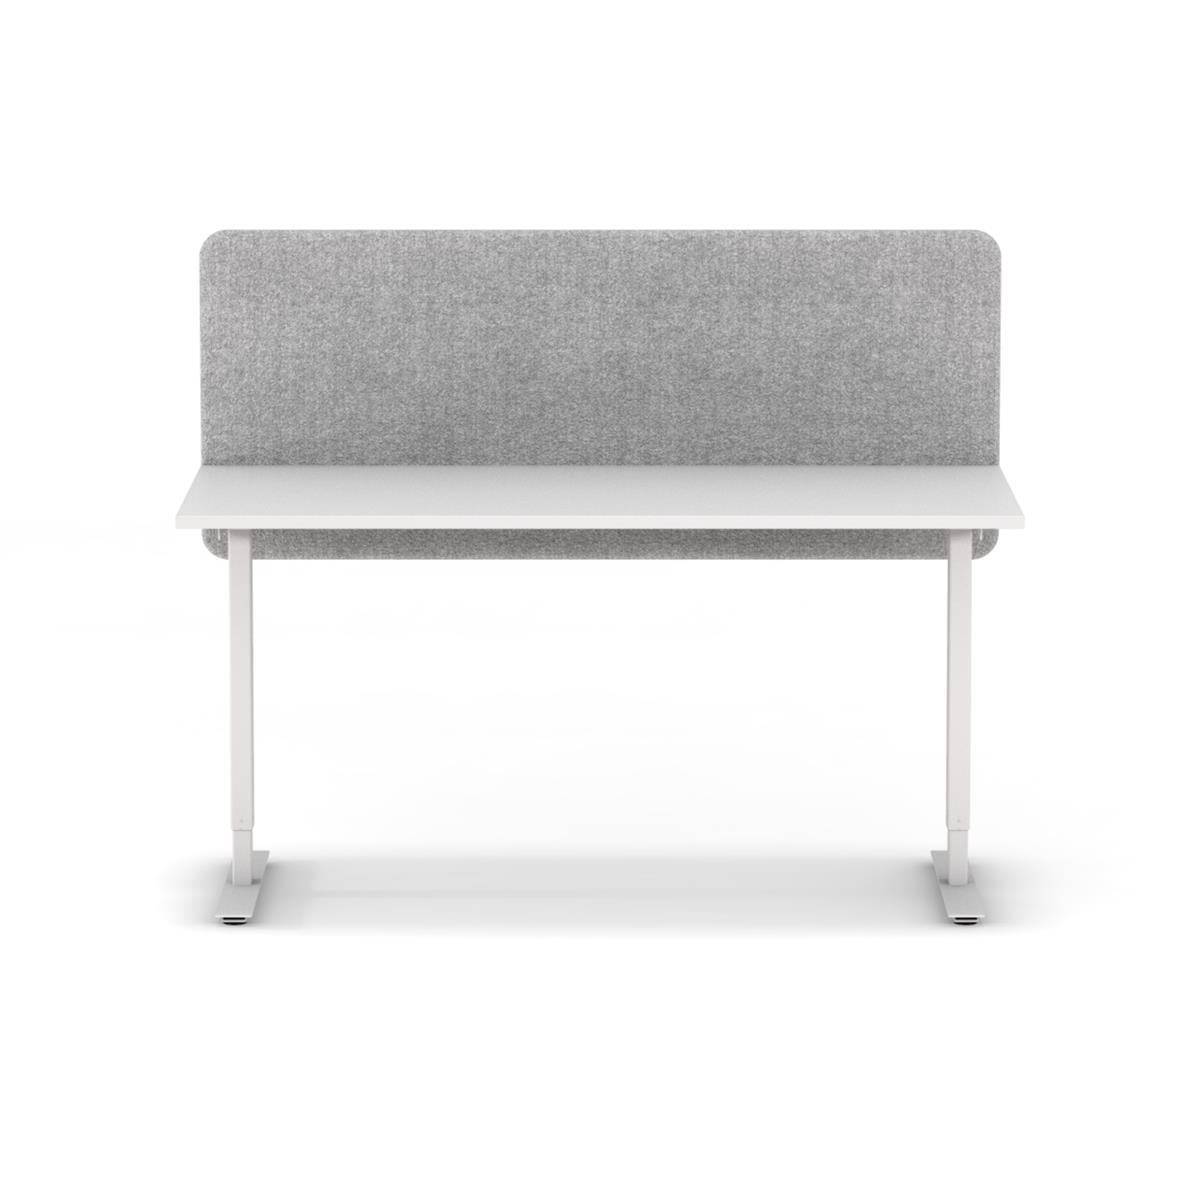 UM Acoustic Screen for hev/senk 160 x H53 - tekstil Camira Synergy